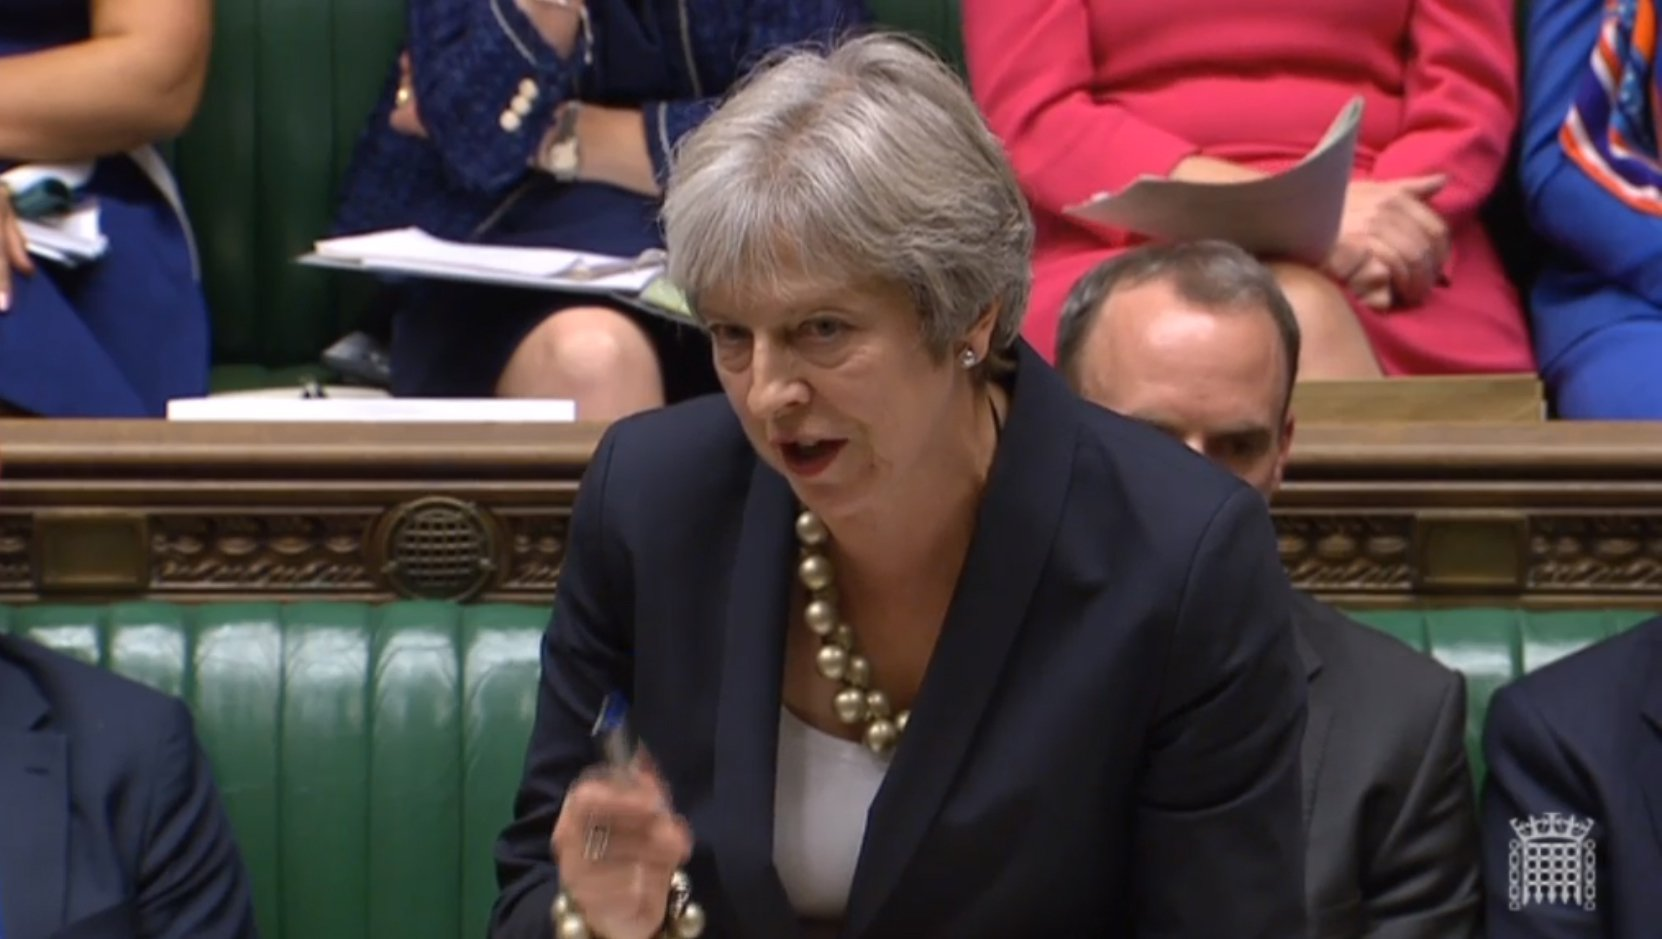 Prime Minister Theresa May making a statement in the House of Commons in London about the European Council summit. PRESS ASSOCIATION Photo. Picture date: Monday October 22, 2018. See PA story POLITICS Brexit. Photo credit should read: PA Wire